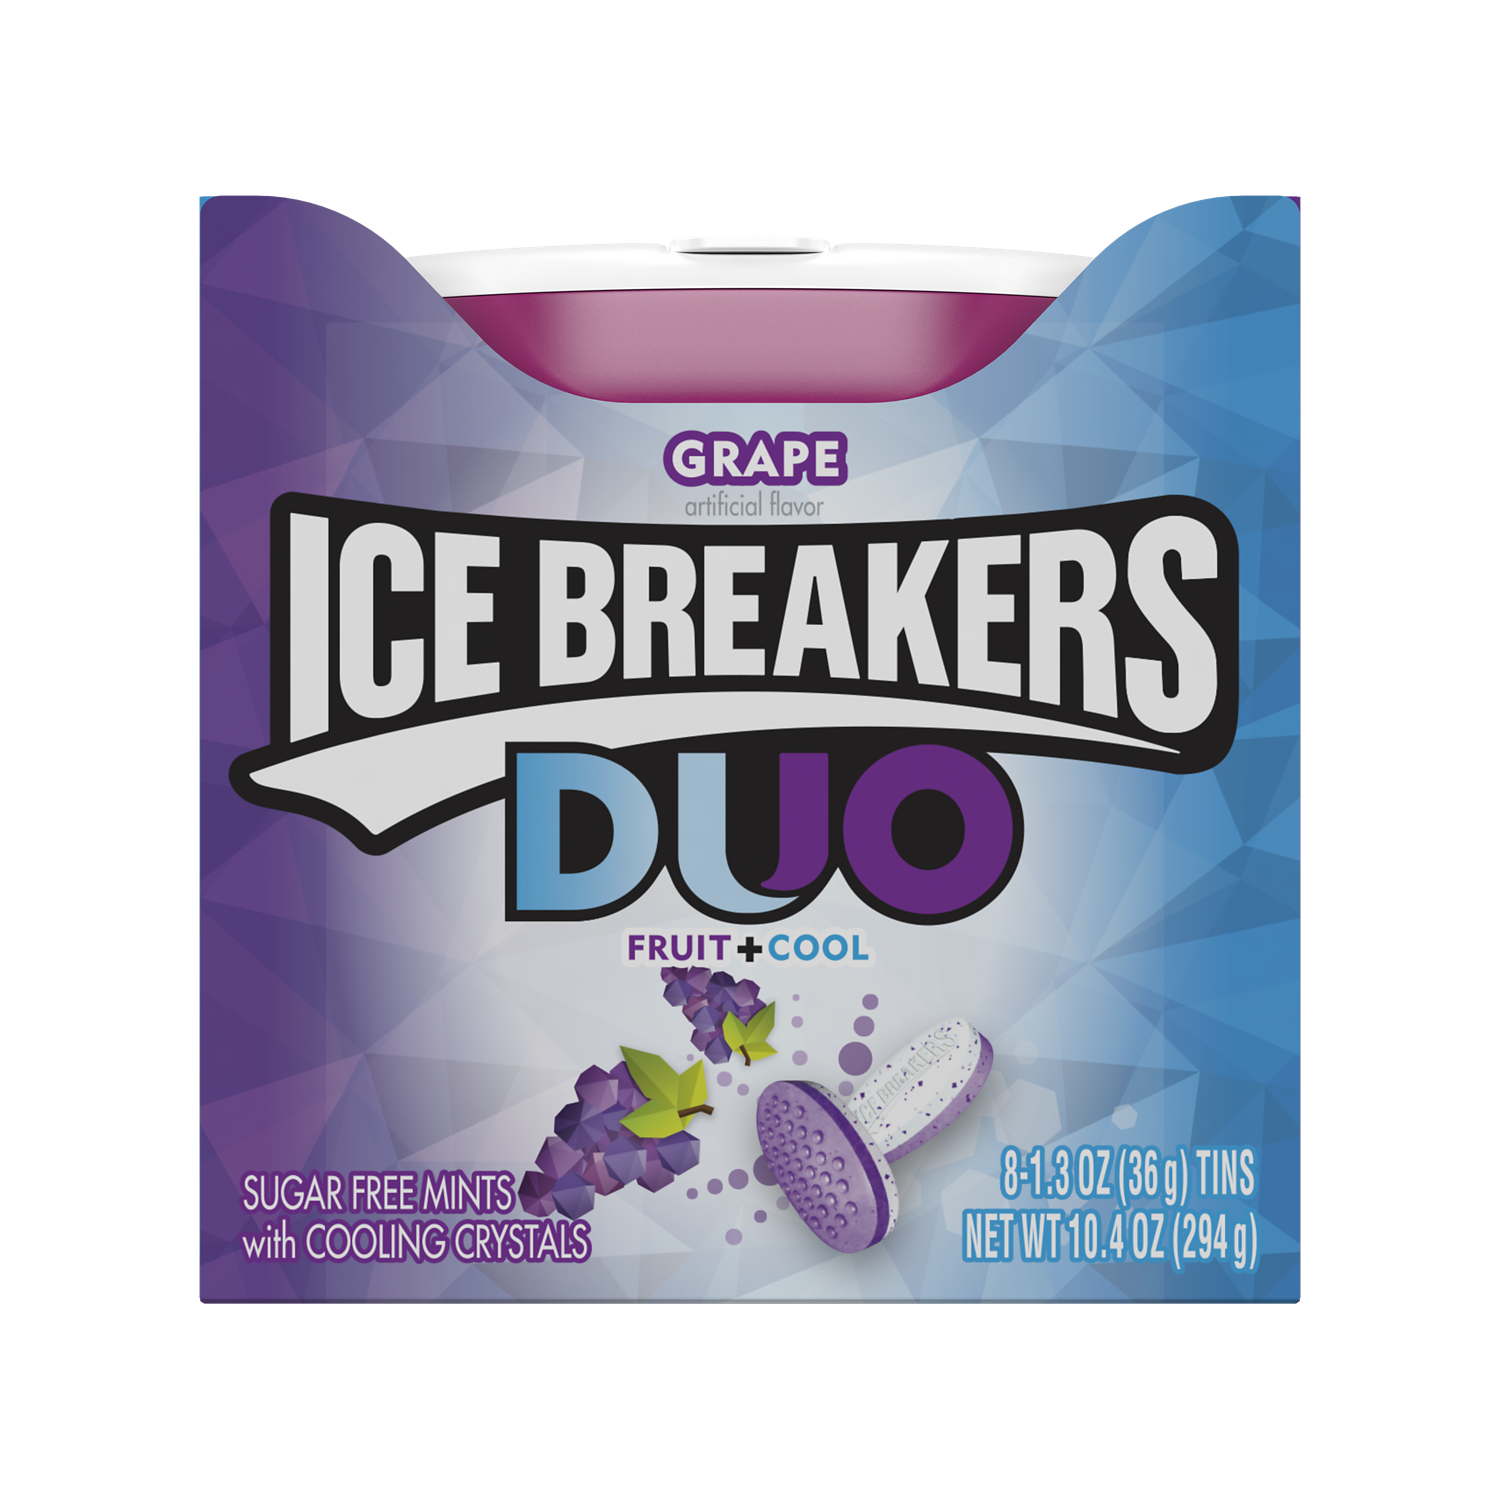 ICE BREAKERS DUO Grape Sugar Free Mints, 10.4 oz box, 8 pack - Front of Package